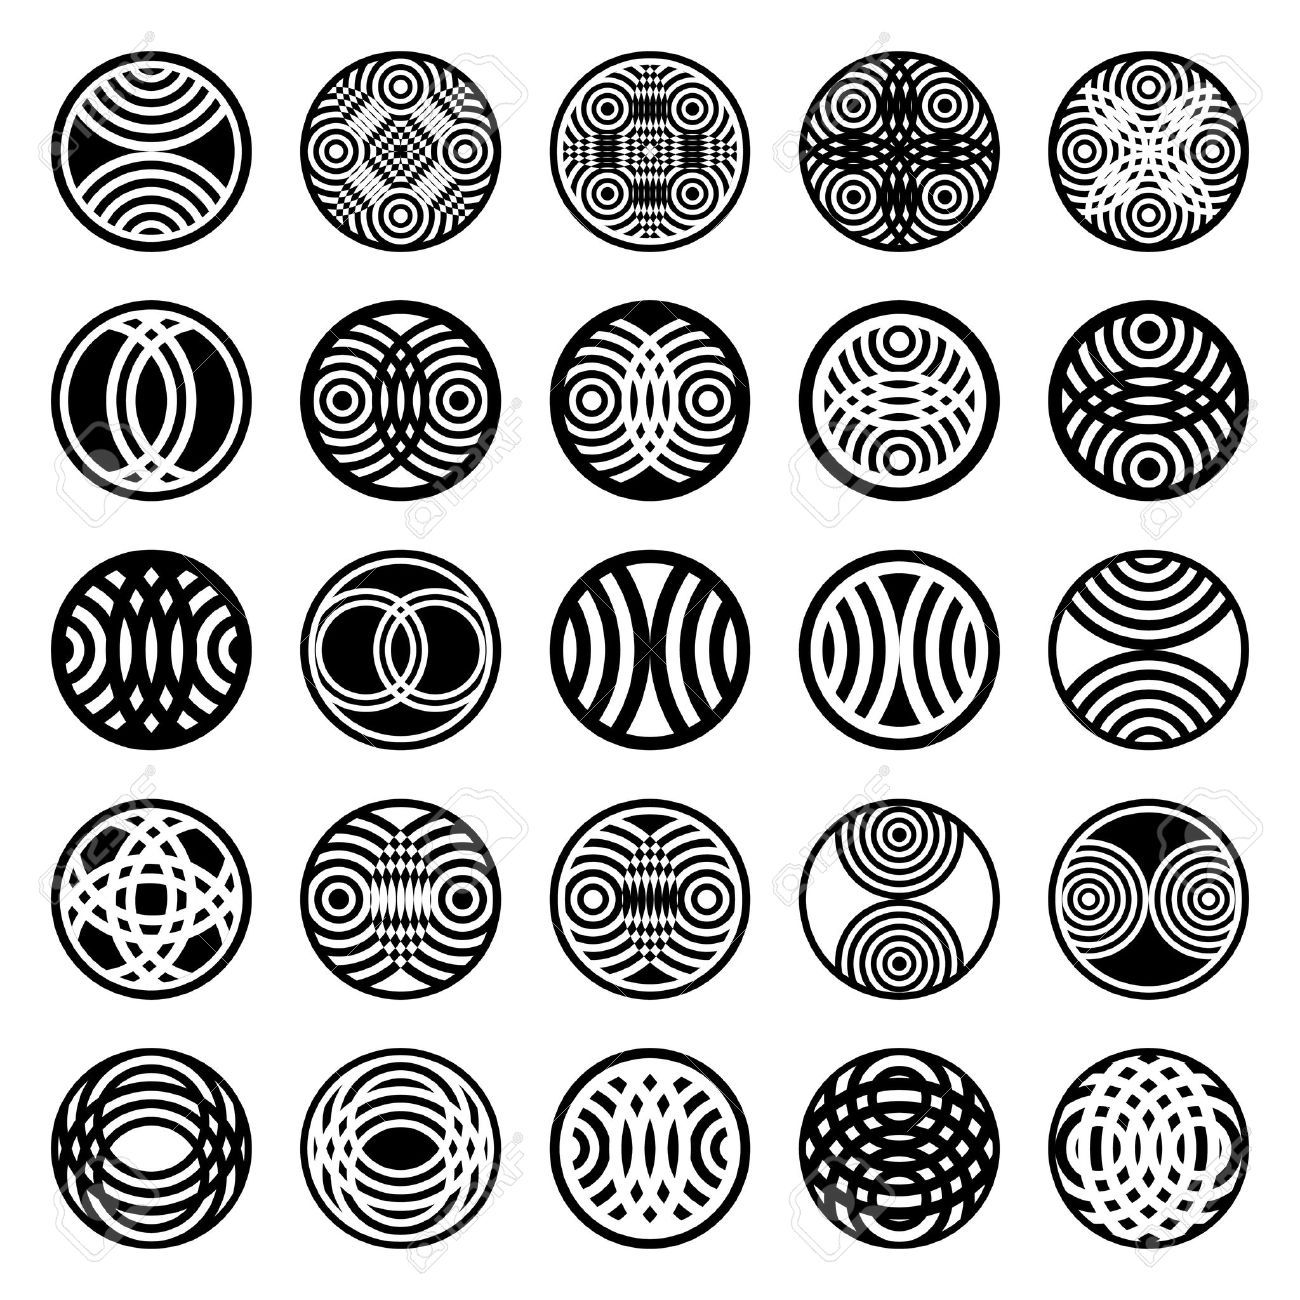 Patterns In Circle Shape 25 Design Elements Set 1